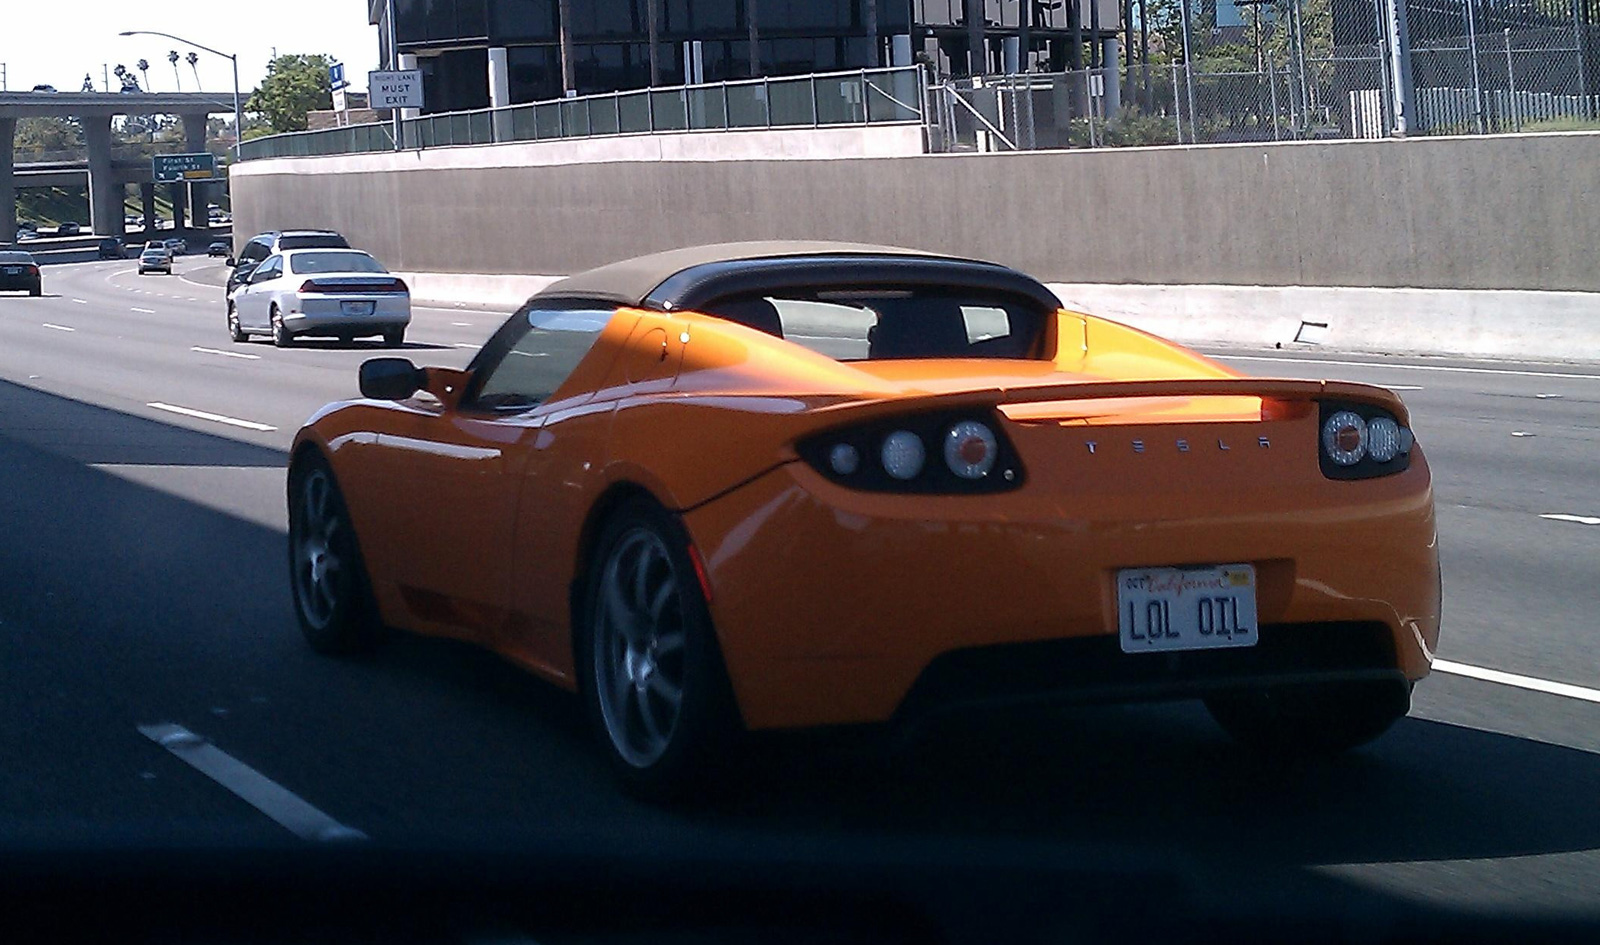 Tesla Roadster with LOL OIL License Plate